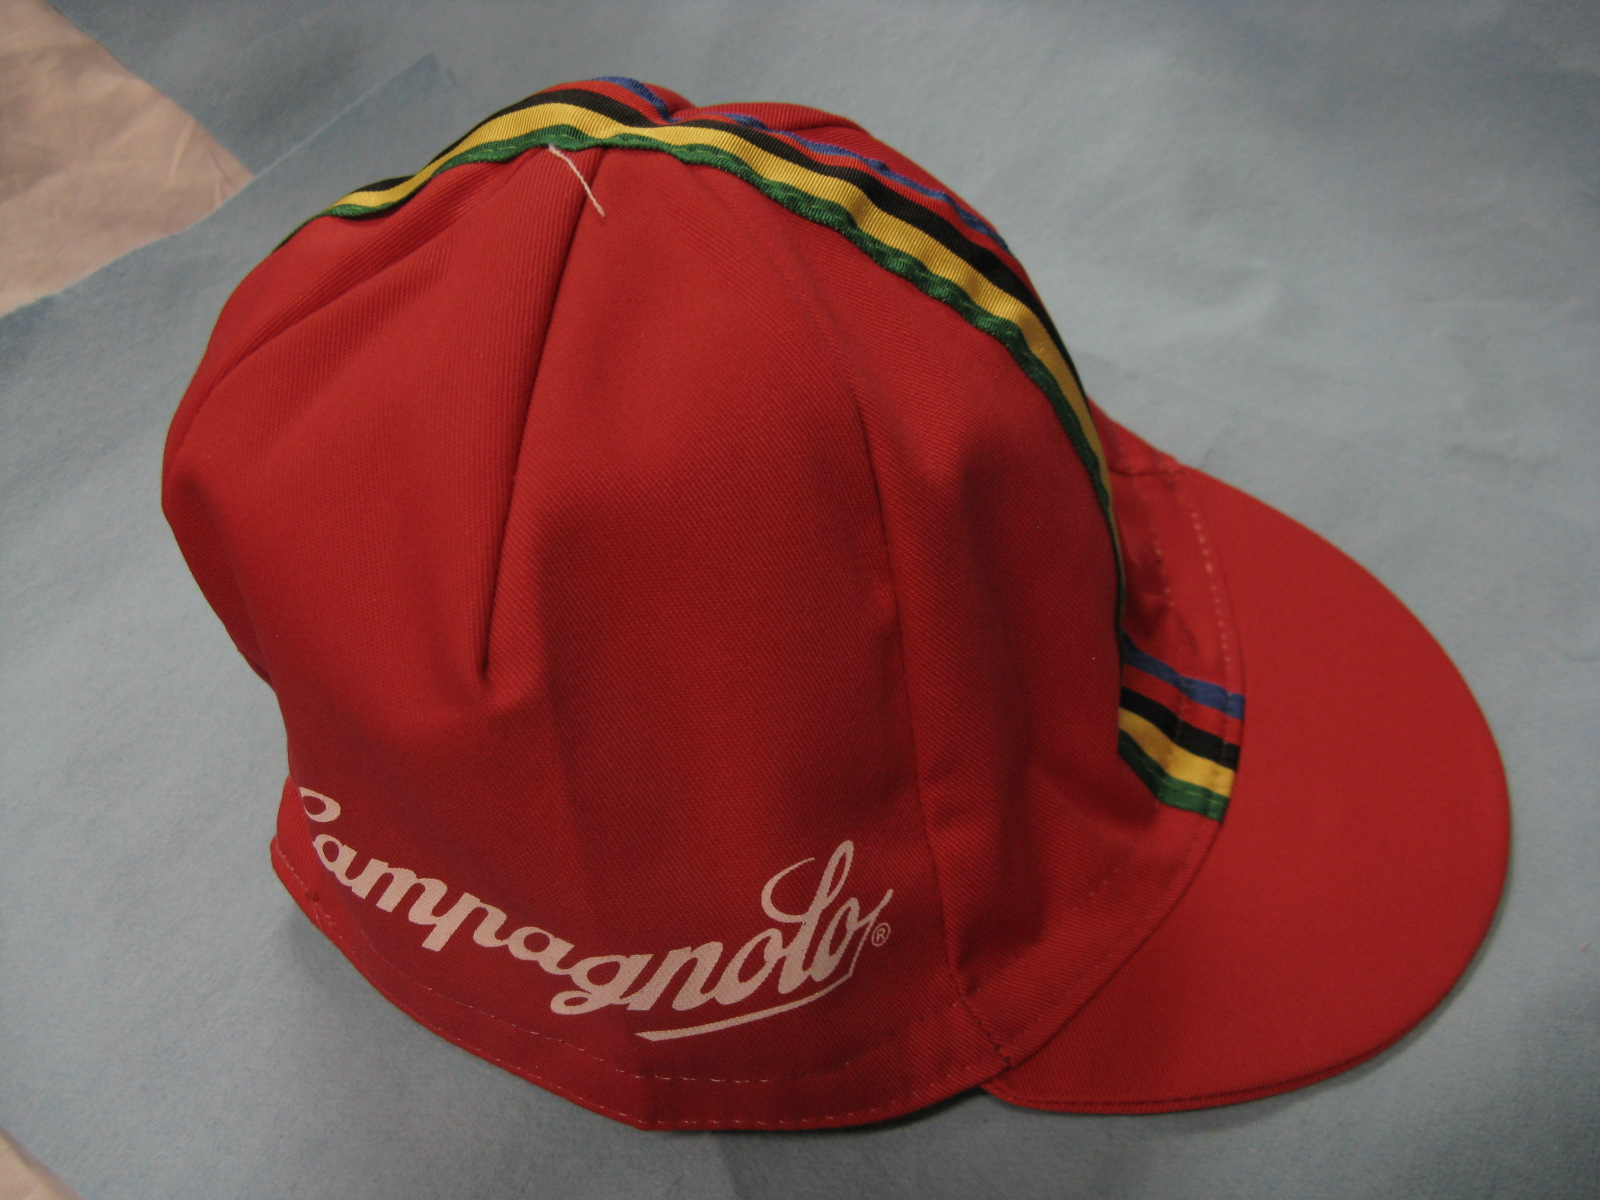 cagnolo cycling cap way cool